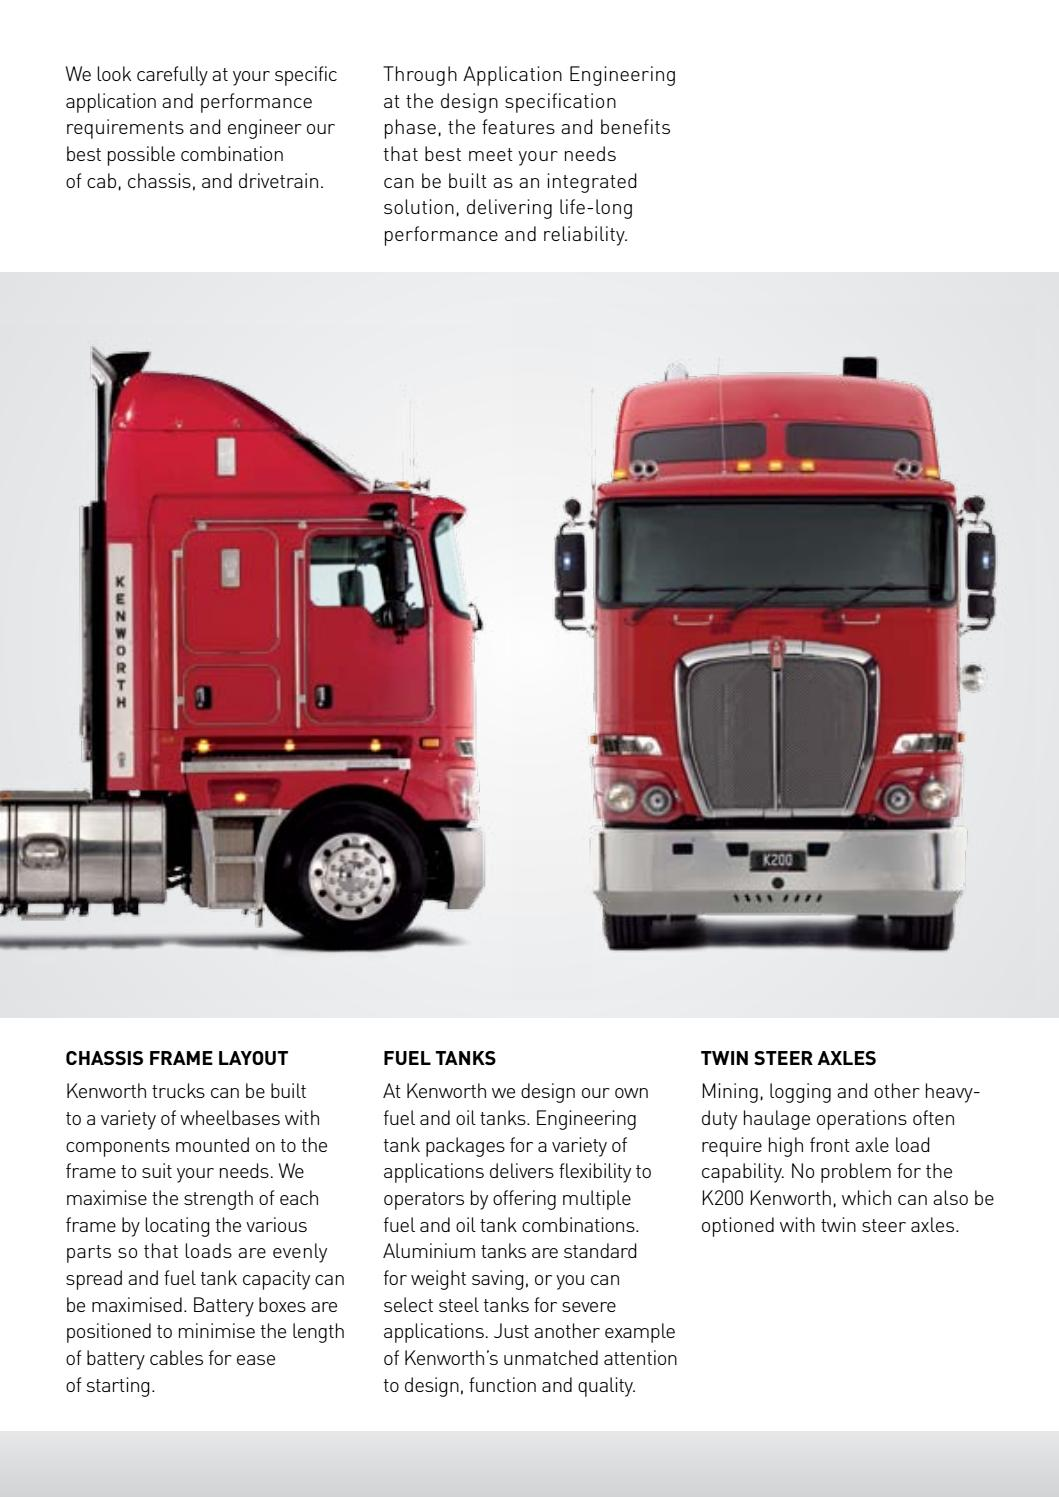 Kenworth K200 Brochure K200-0316W by PACCAR Australia - issuu